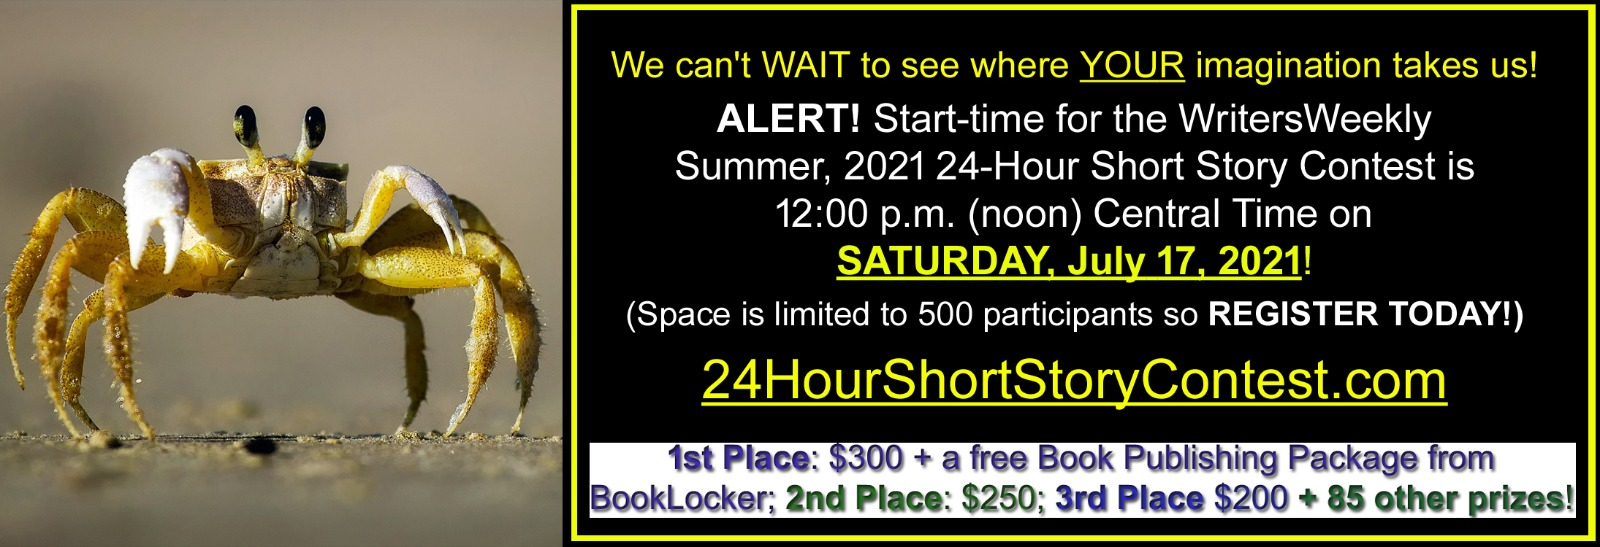 Fall 2020 24 Hour Short Story Contest